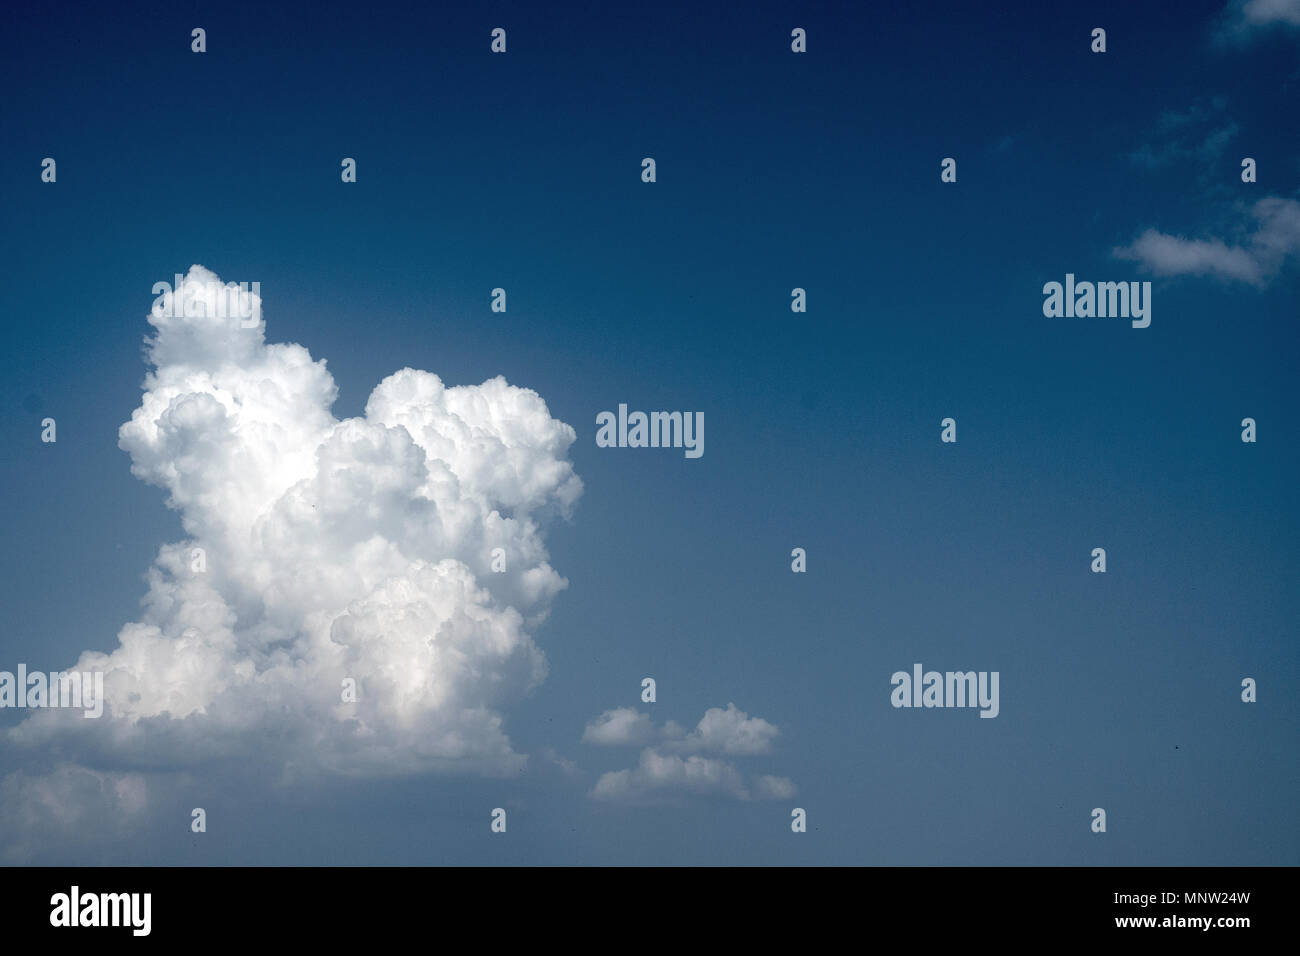 White fluffy clouds in the vast blue sky. Predominantly sky, copy space. Abstract nature background. Copy space for text. Close-up. - Stock Image